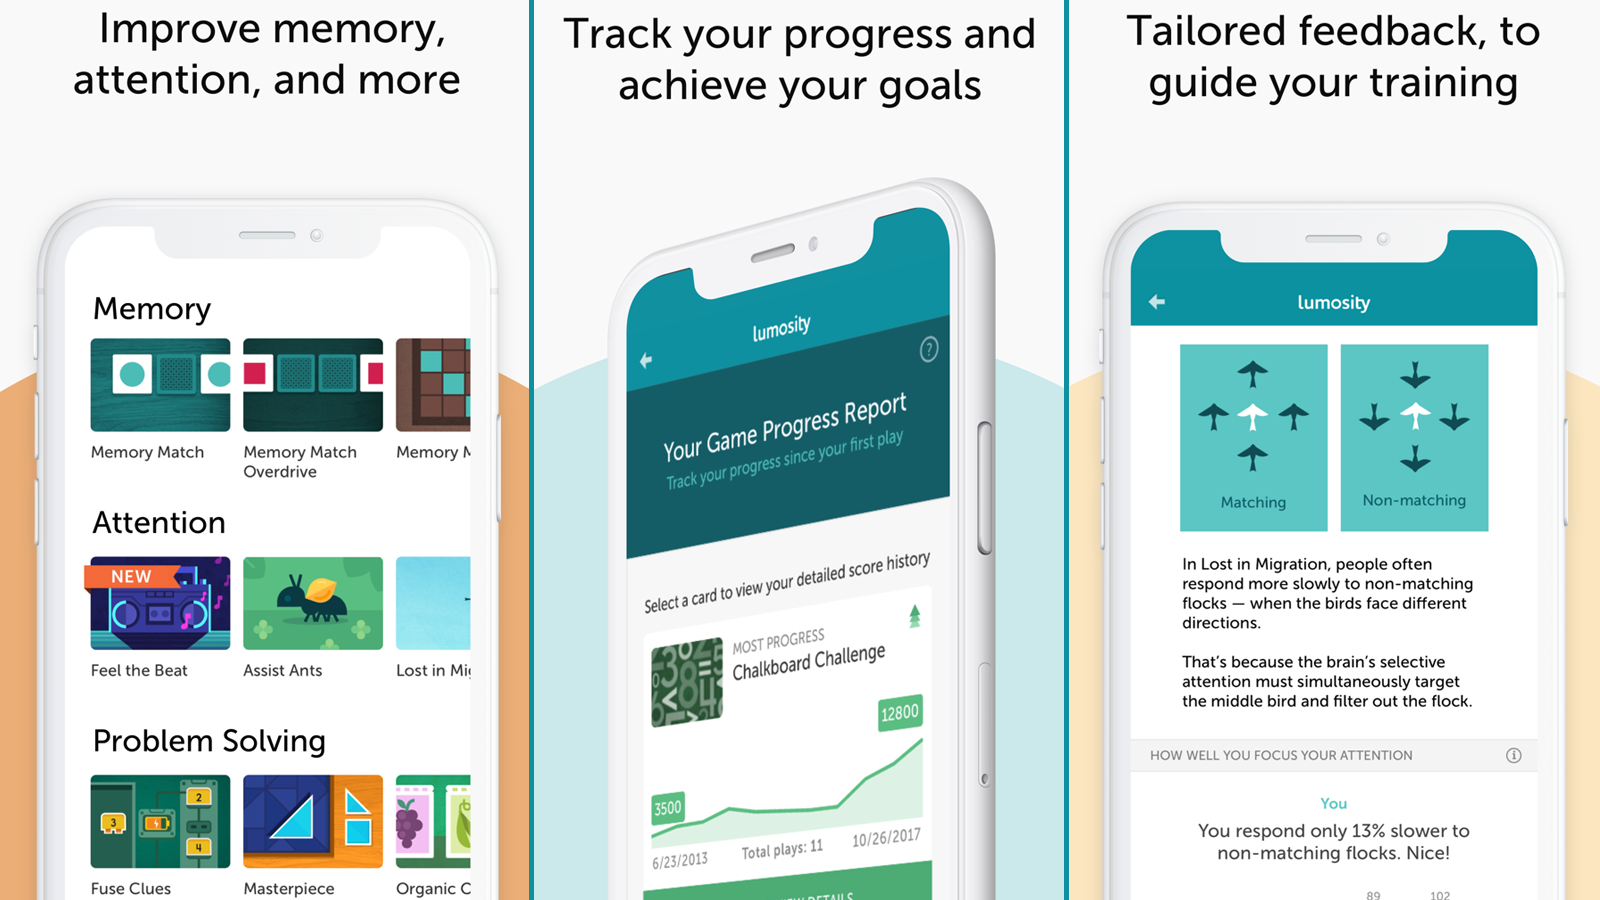 Lumosity app with brain training options and progress tracking features